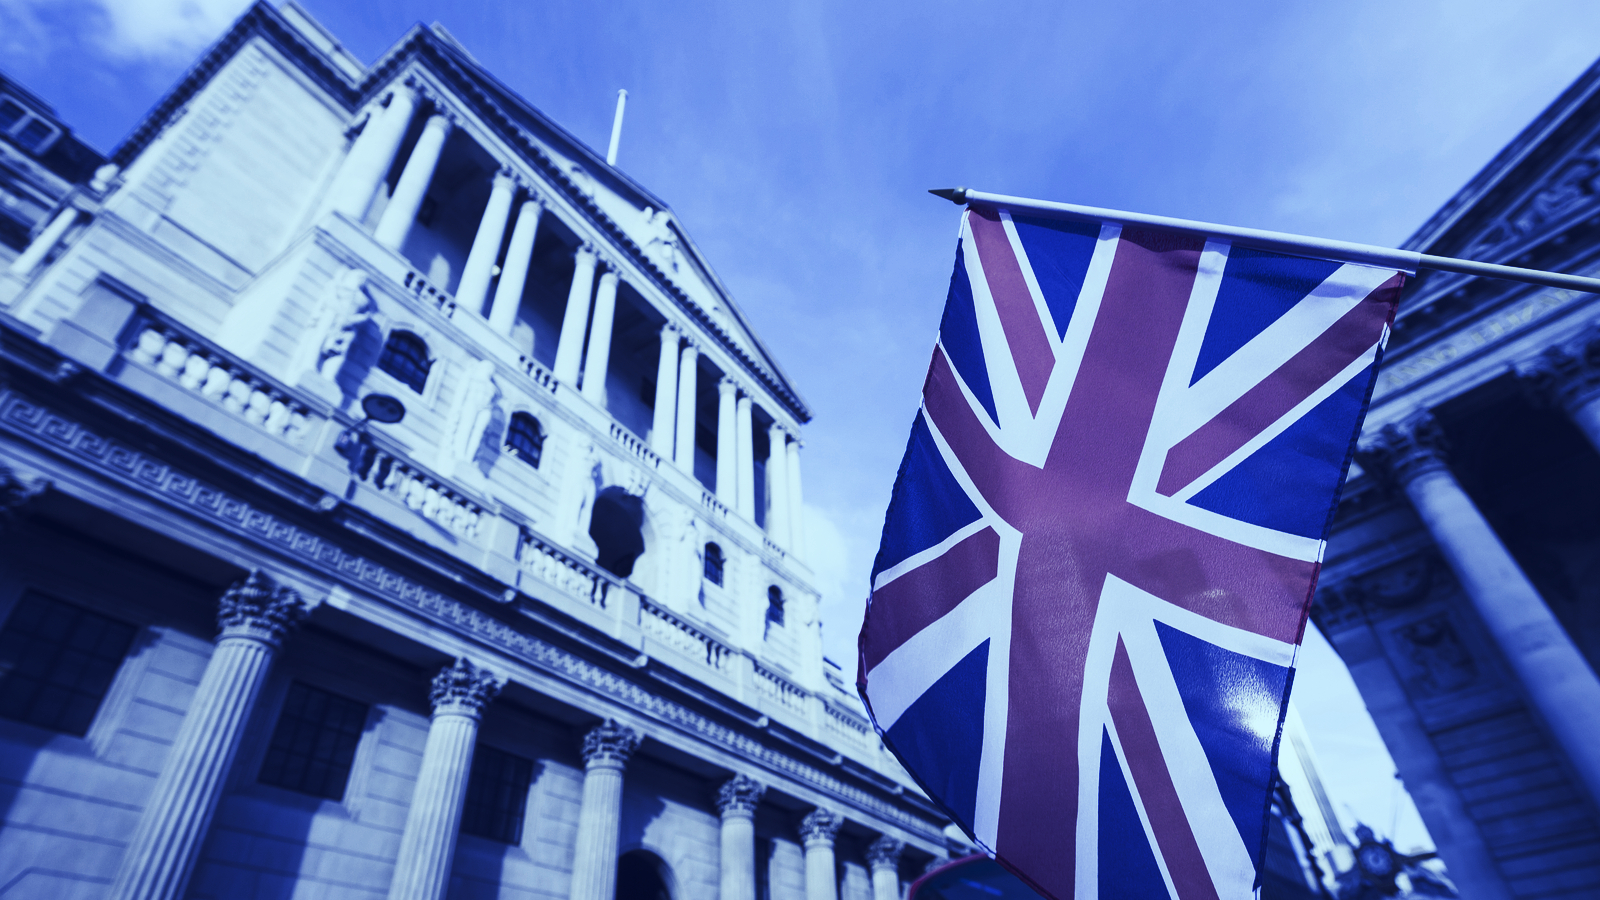 Bank of England Slams Bitcoin, Praises Stablecoins and CBDCs - Decrypt